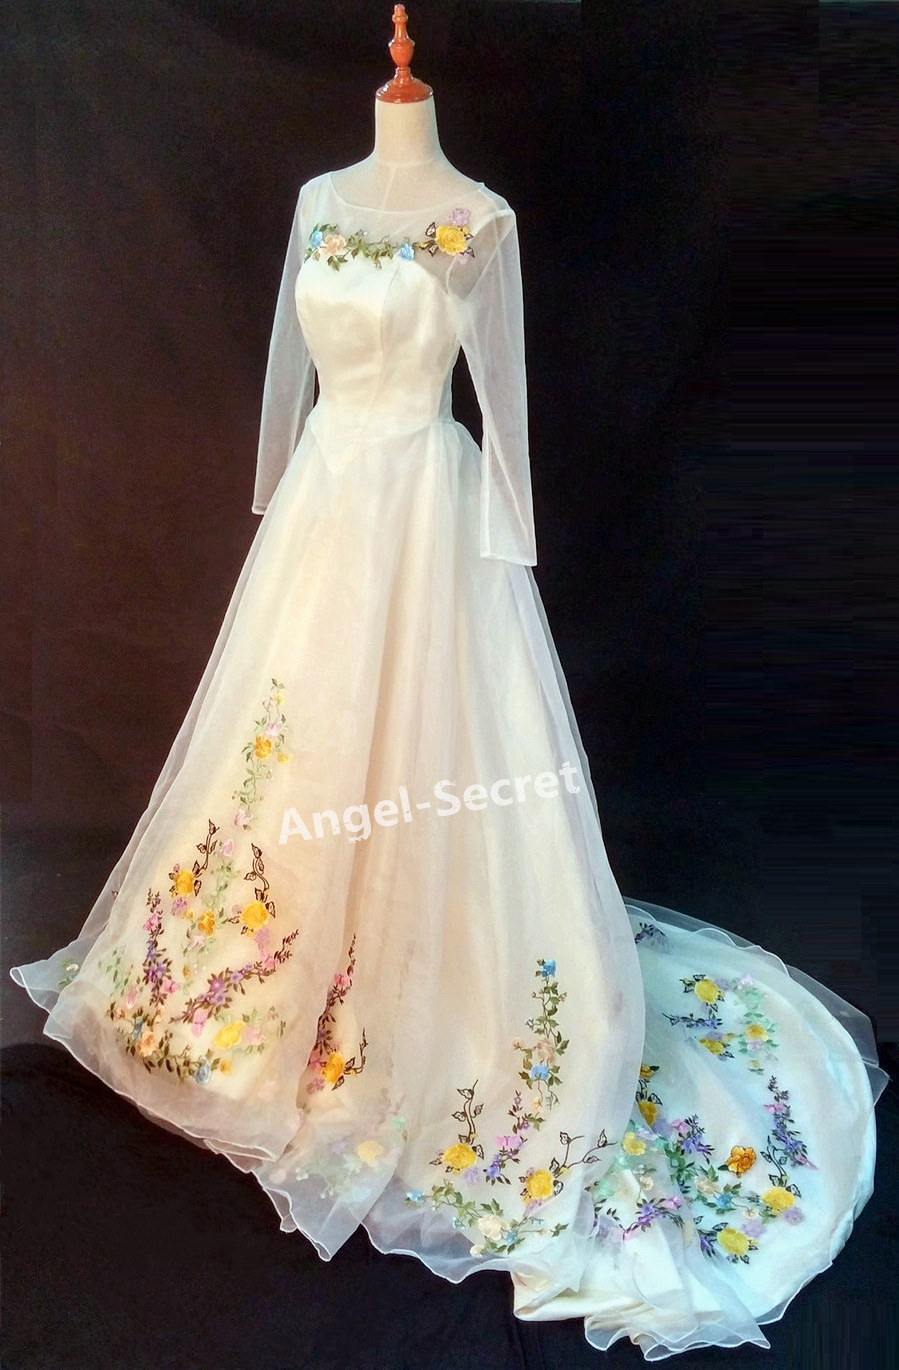 P305 Movie Costume Cinderella 2015 Ivory Gown Wedding Bridal 100cm Long  Train   Thumbnail 1 ...